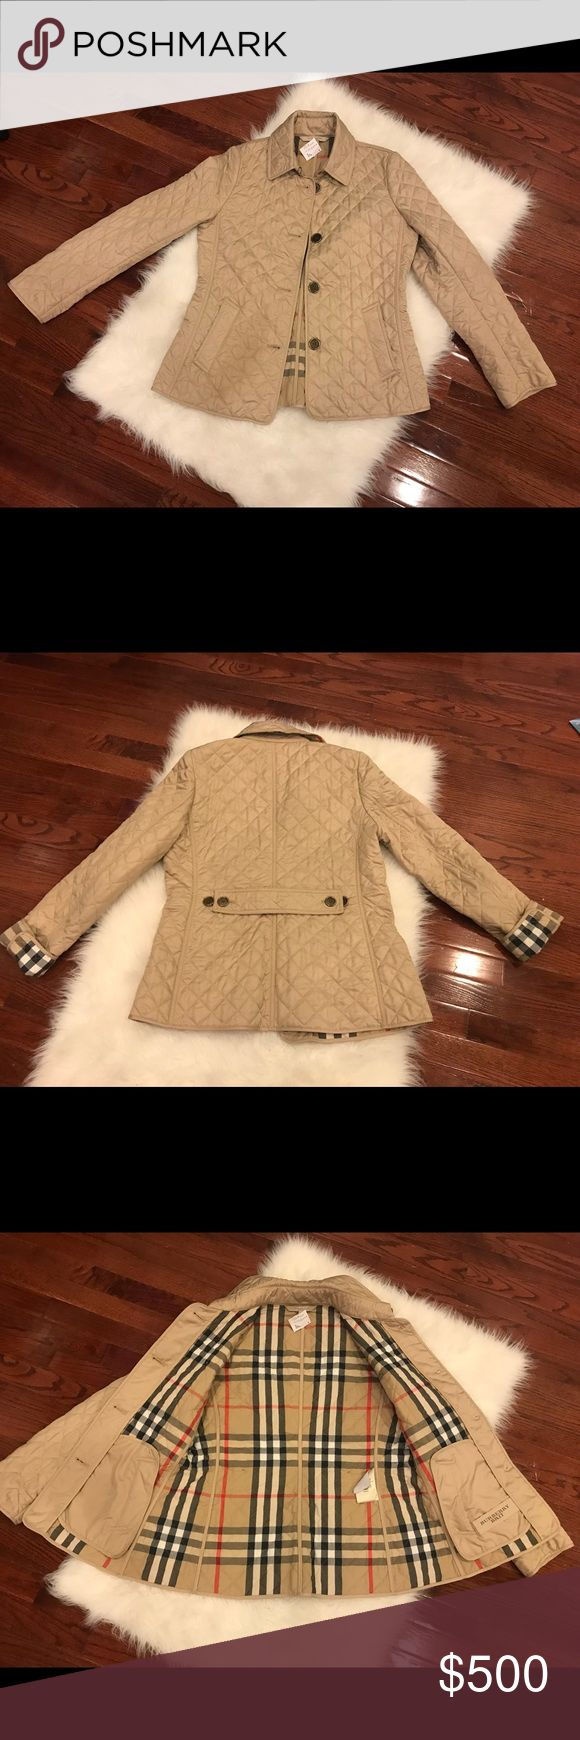 NWT tan cream Burberry Brit jacket medium NWT tan/cream color Burberry Brit jacket size medium, adjustable belt in the back. Not sure if I like like this color enough to keep hence why I haven't taken the tags off. No bundle discounts Burberry Jackets & Coats